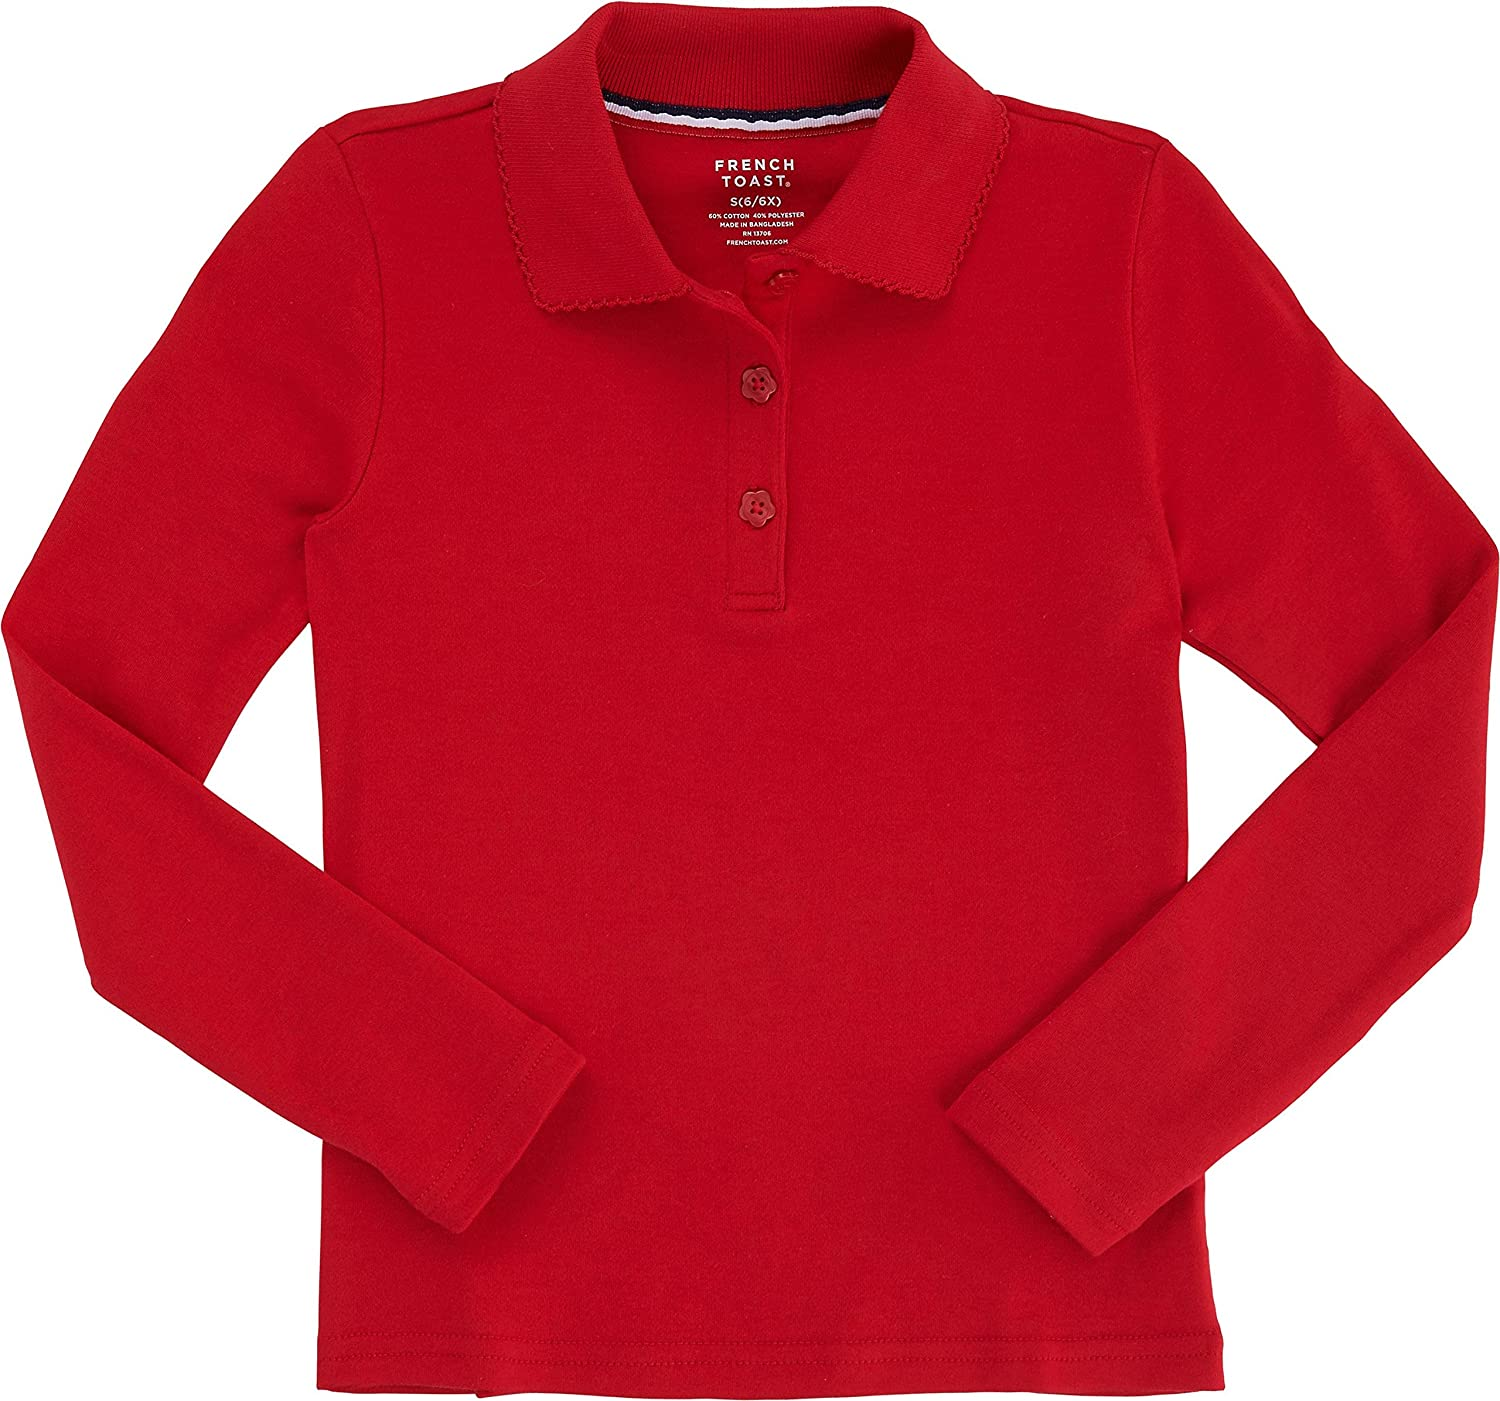 French Toast School Uniform Girls Long Sleeve Polo with Picot Collar, Red, 4T LT-A9424-RED-4T